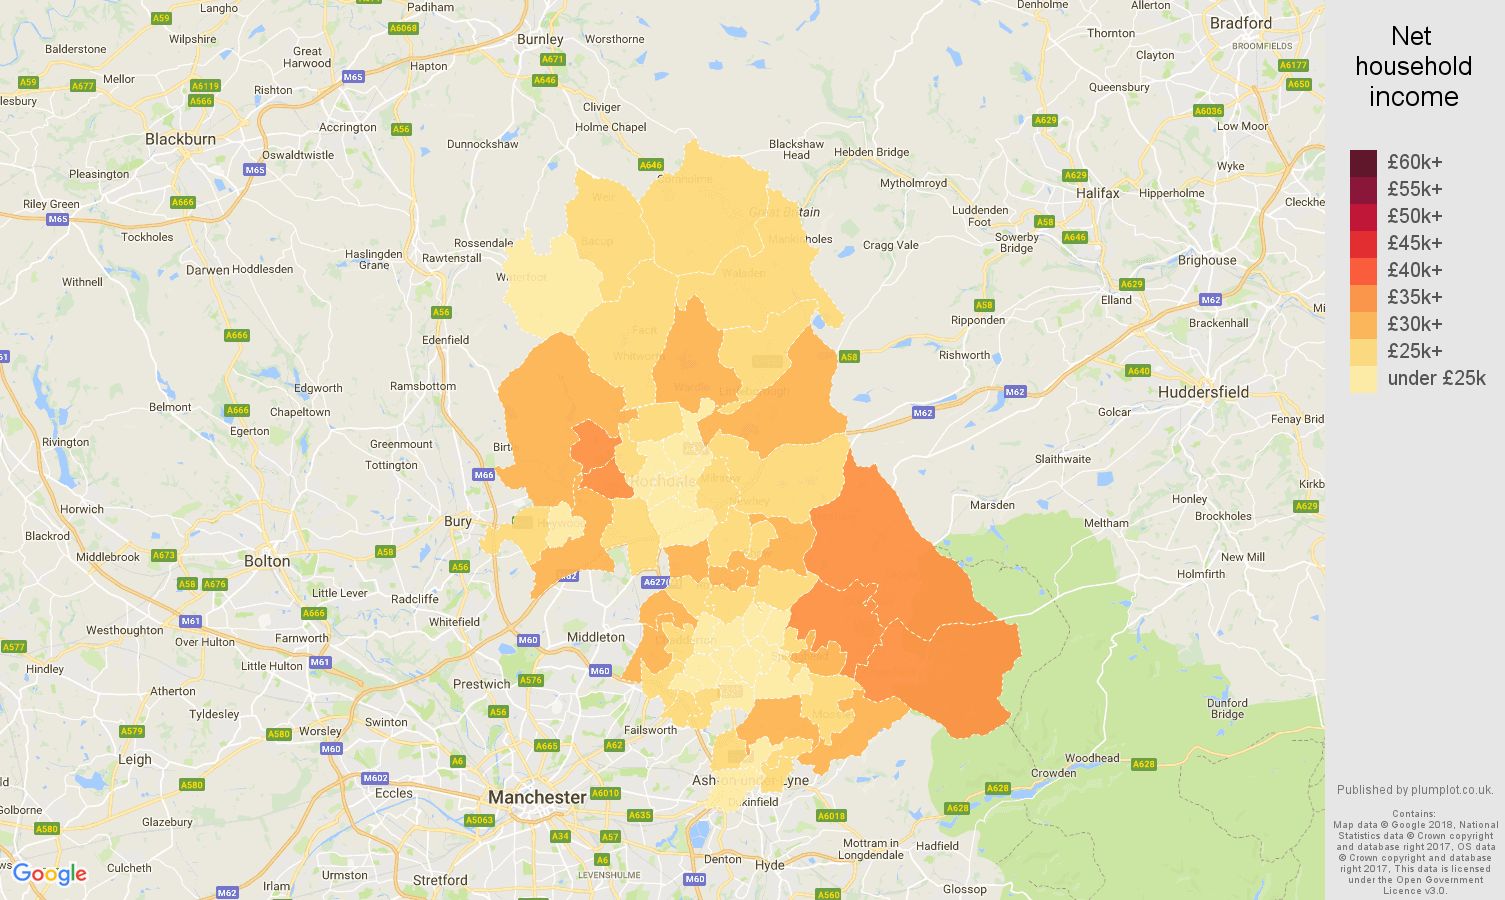 Oldham net household income map